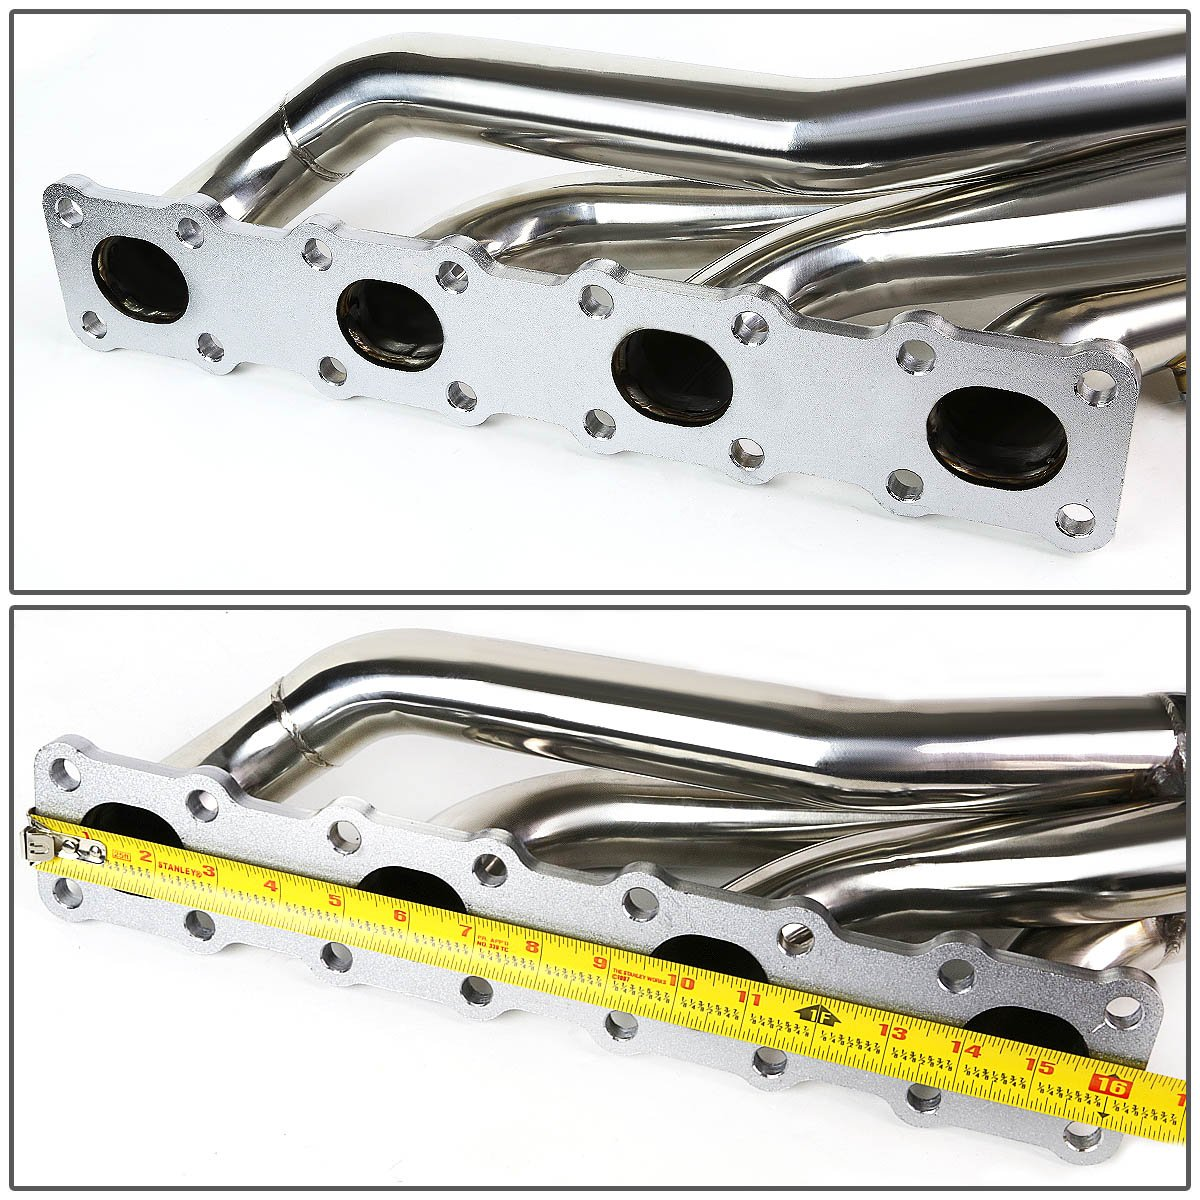 Amazon.com: For Nissan Titan A60 / Armada WA60 Stainless Steel Long Tube  Racing Exhaust Header: Automotive